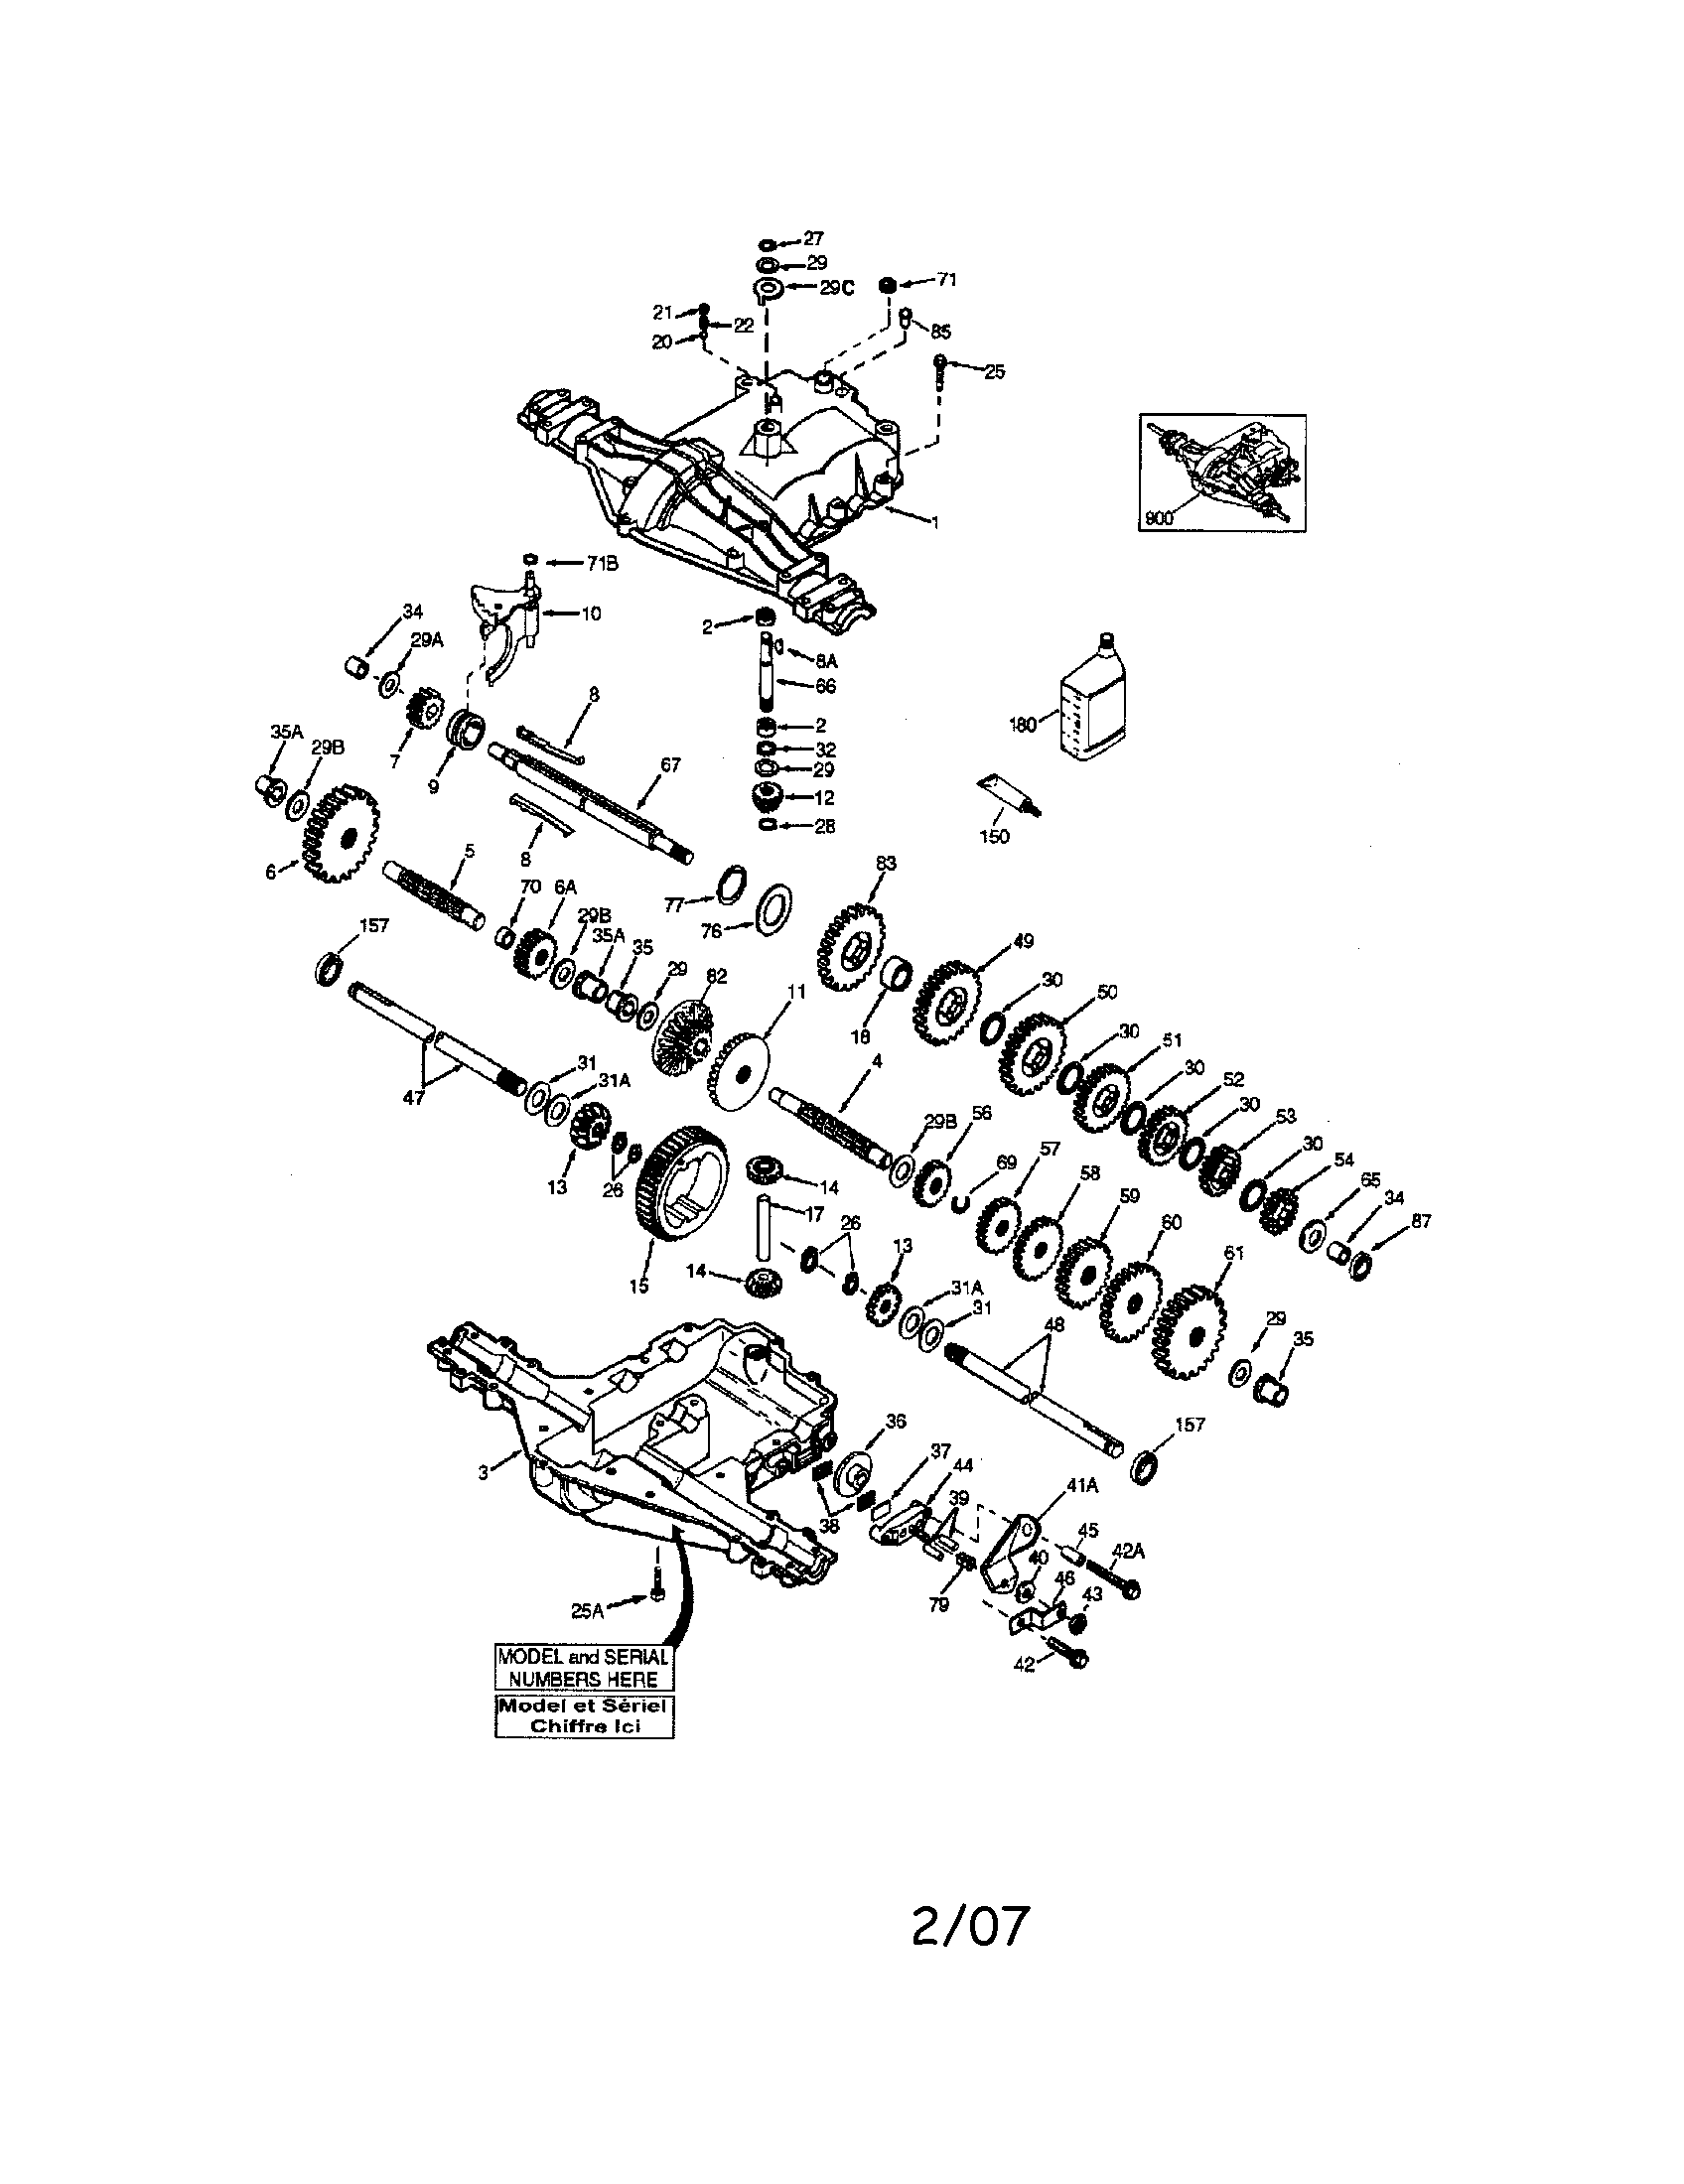 small resolution of peerless transaxle diagram parts list for model 917270812 craftsman parts riding mower